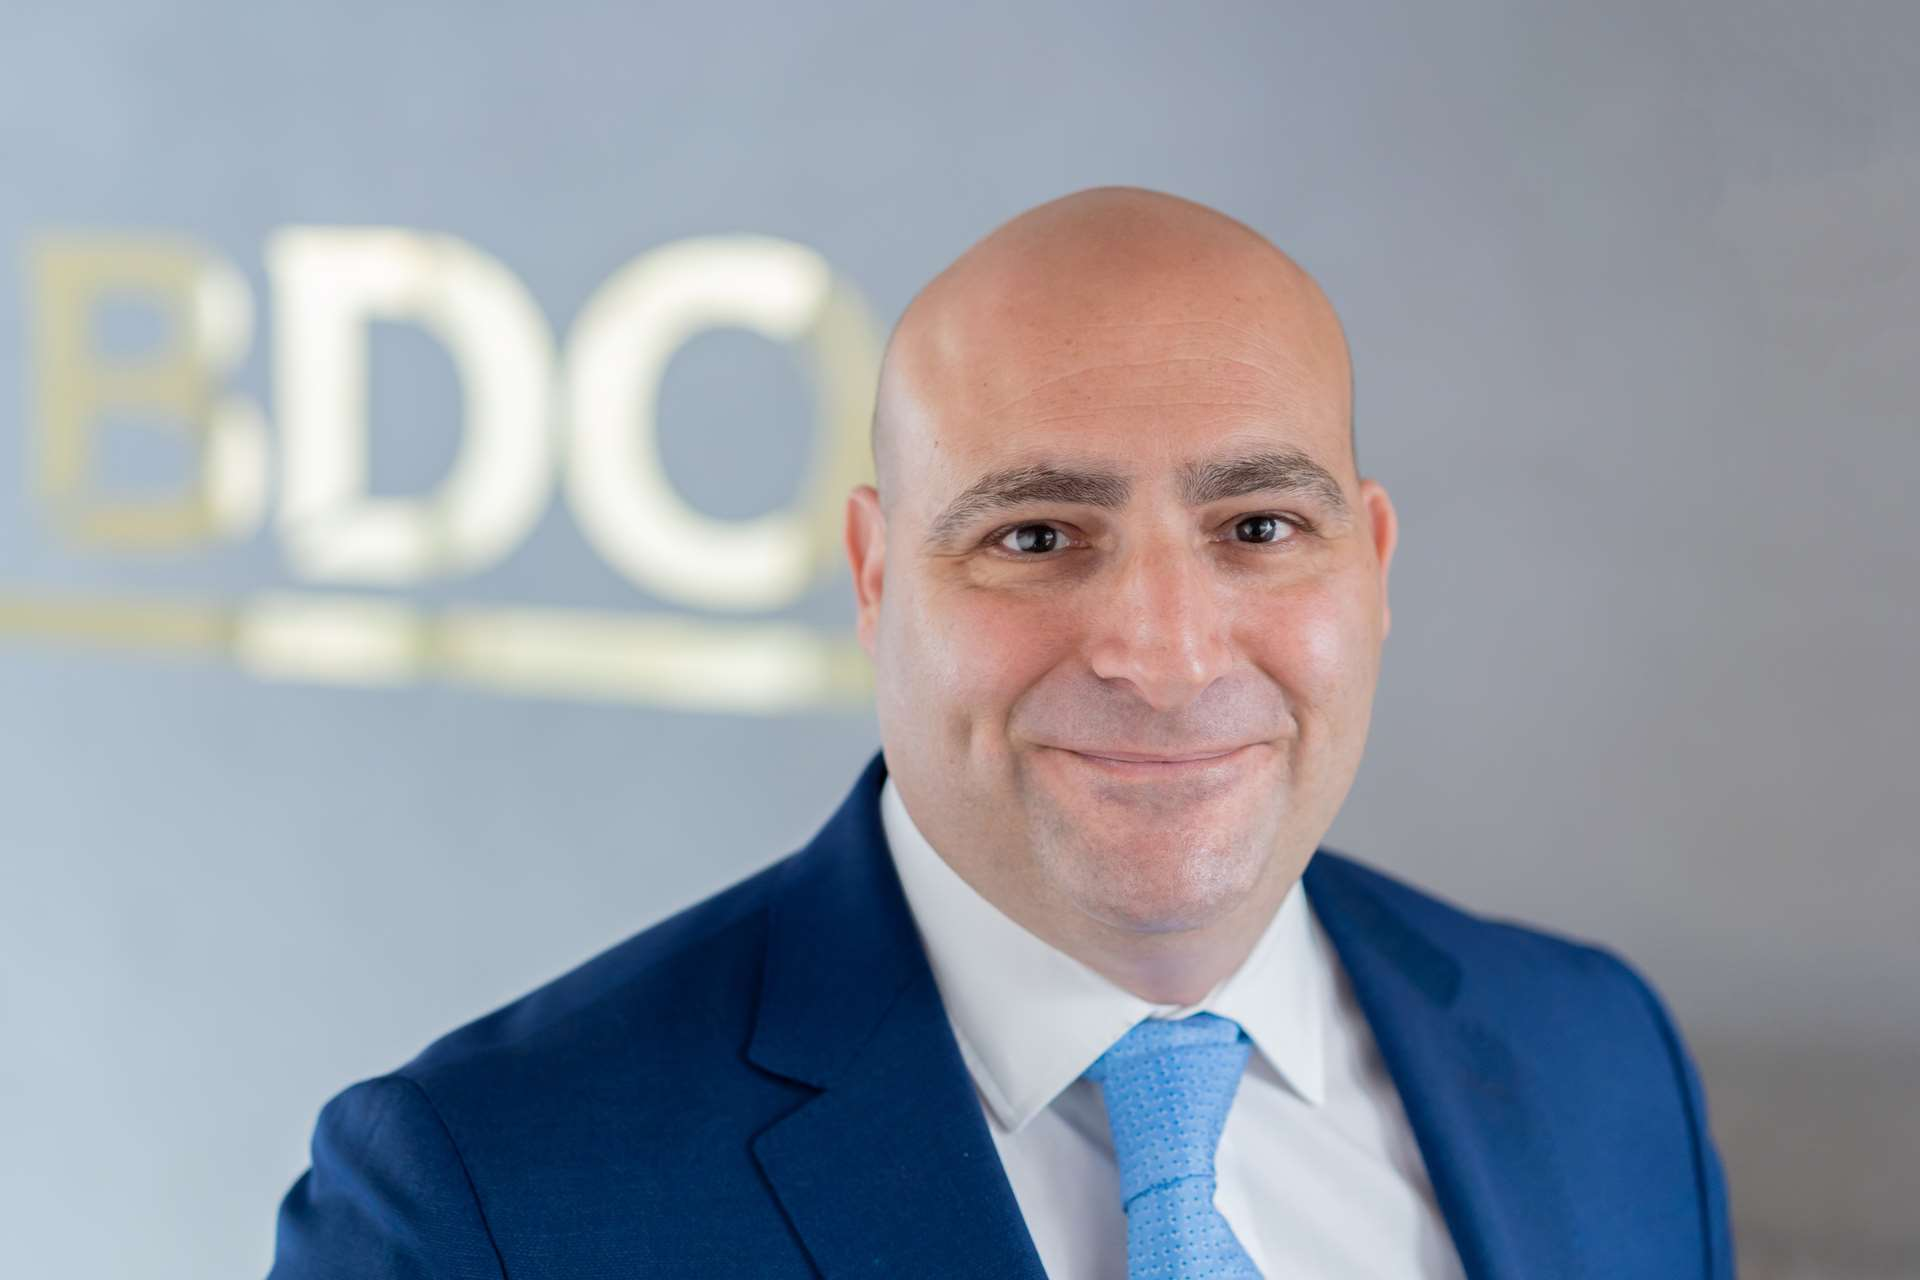 Mark Attard, Chief Executive Officer